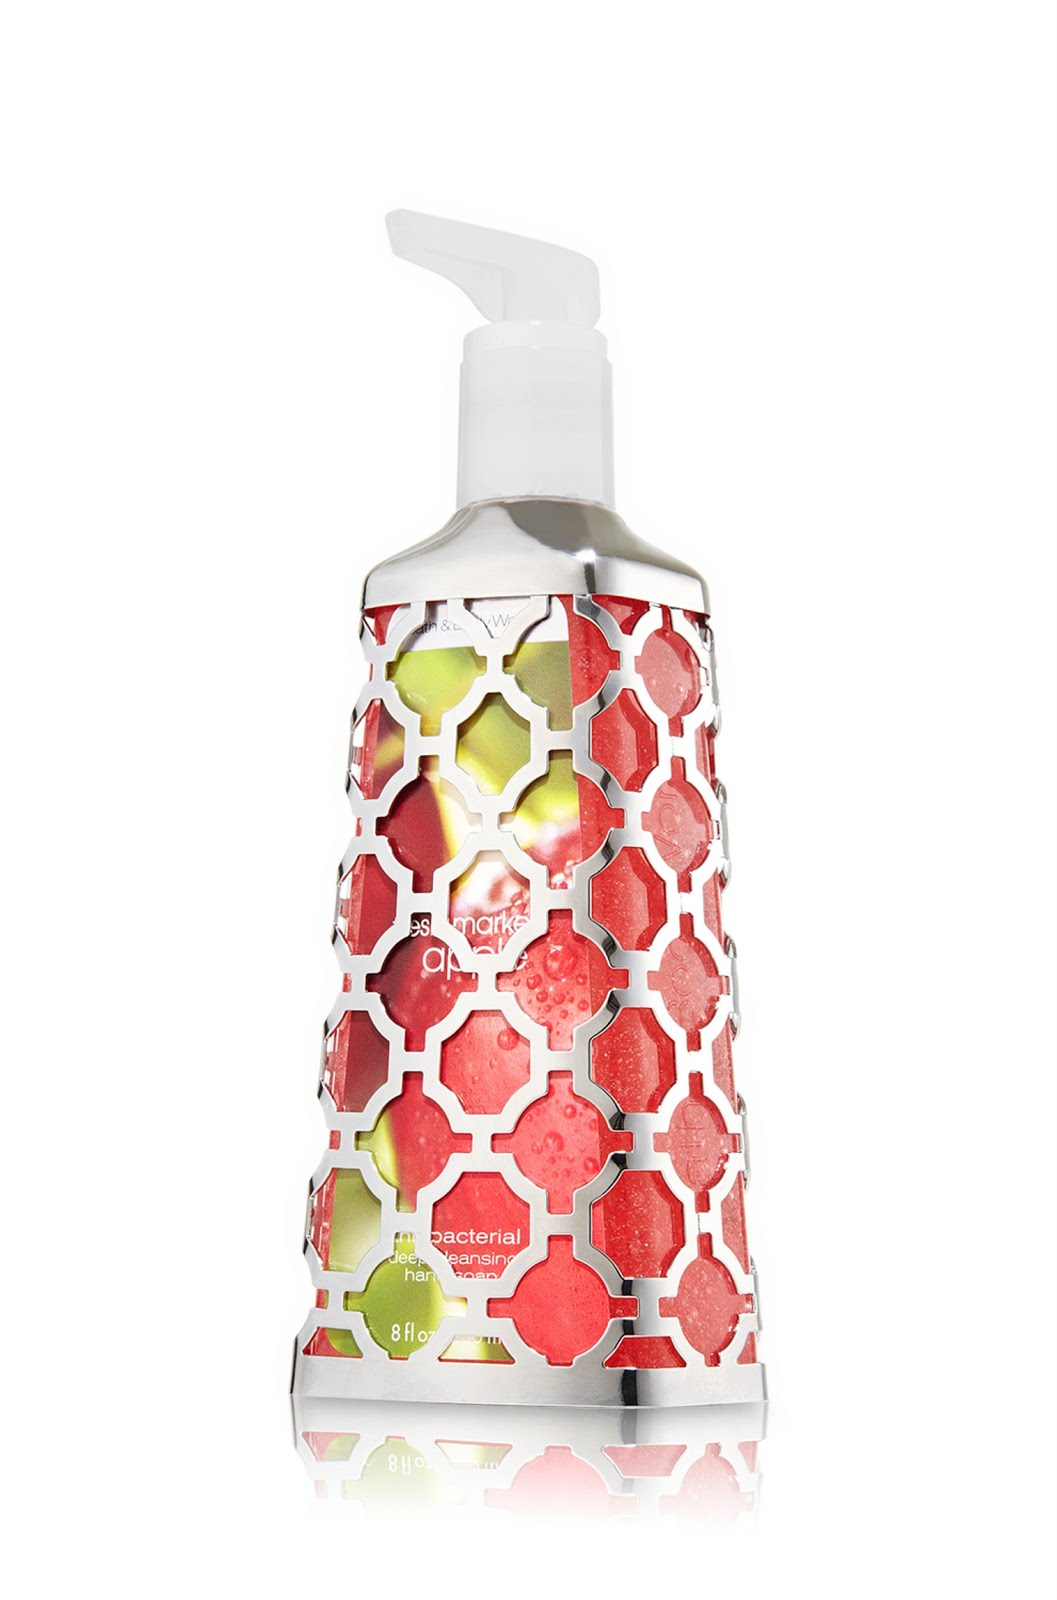 A Shimmering Star Bath Amp Body Works 174 Soap Sleeve